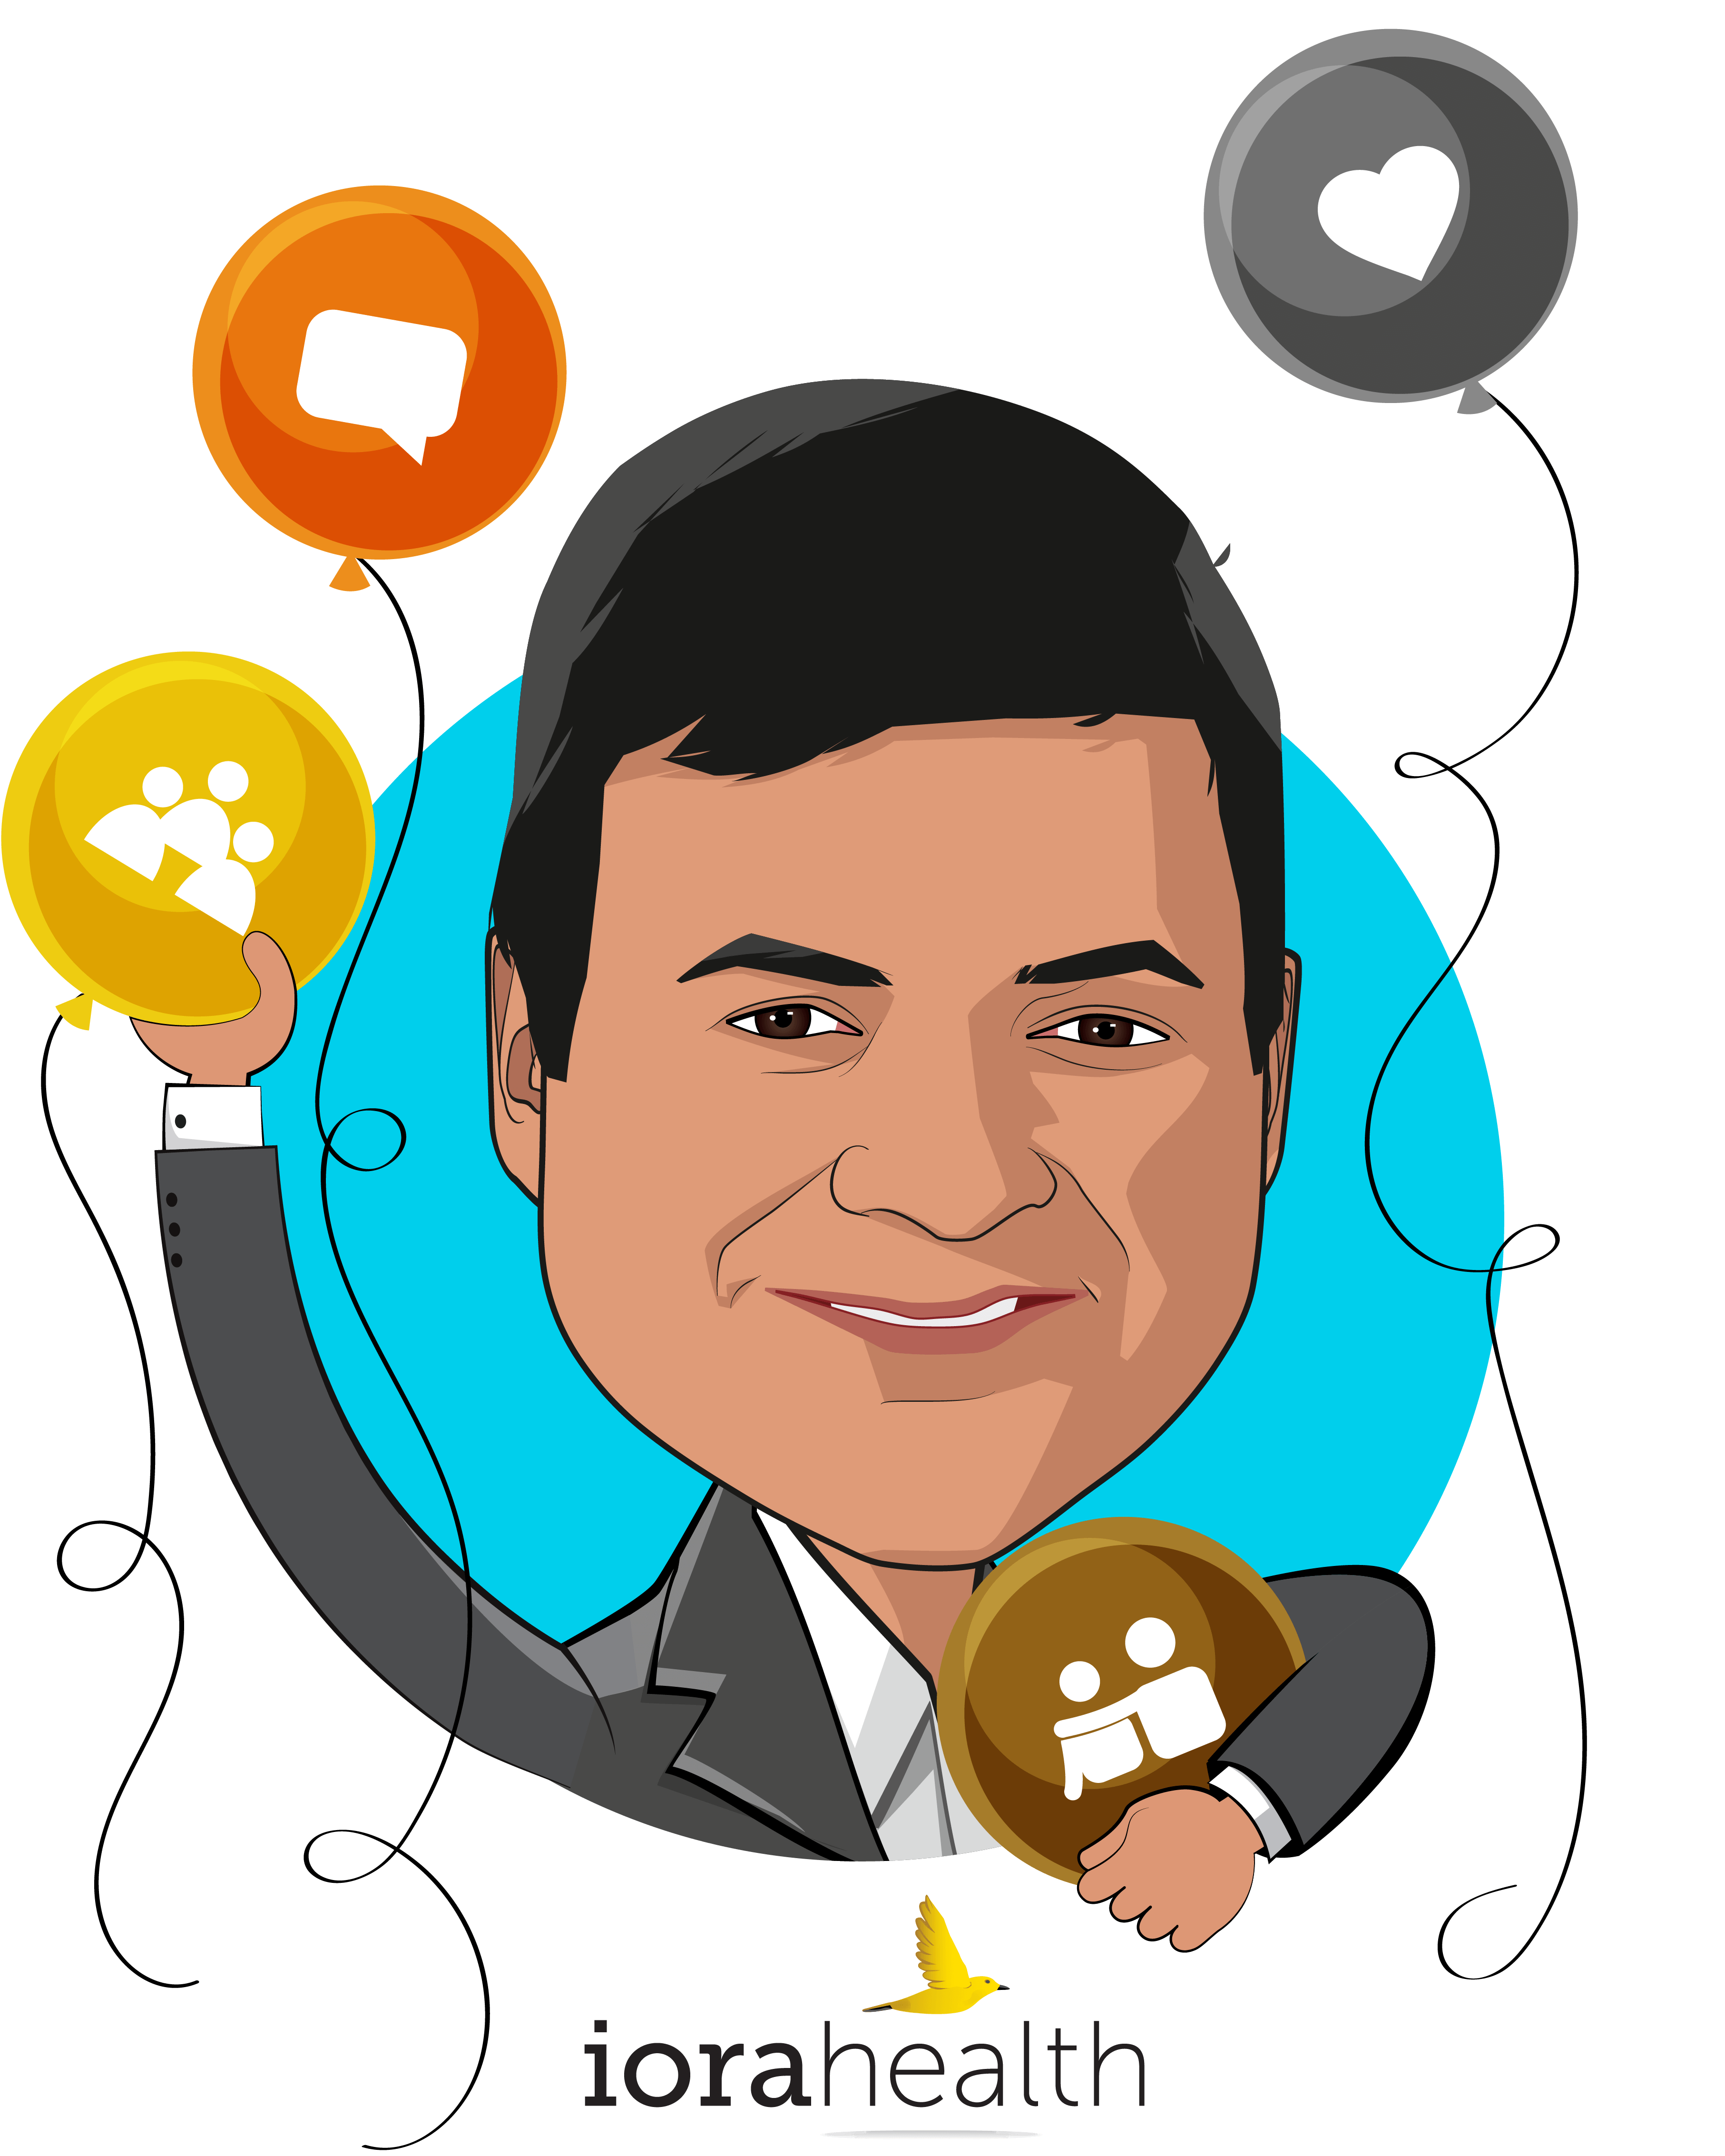 Overlay caricature of Rushika Fernandopulle, MD, MPP, who is speaking at HLTH and is CEO & Co-Founder at Iora Health